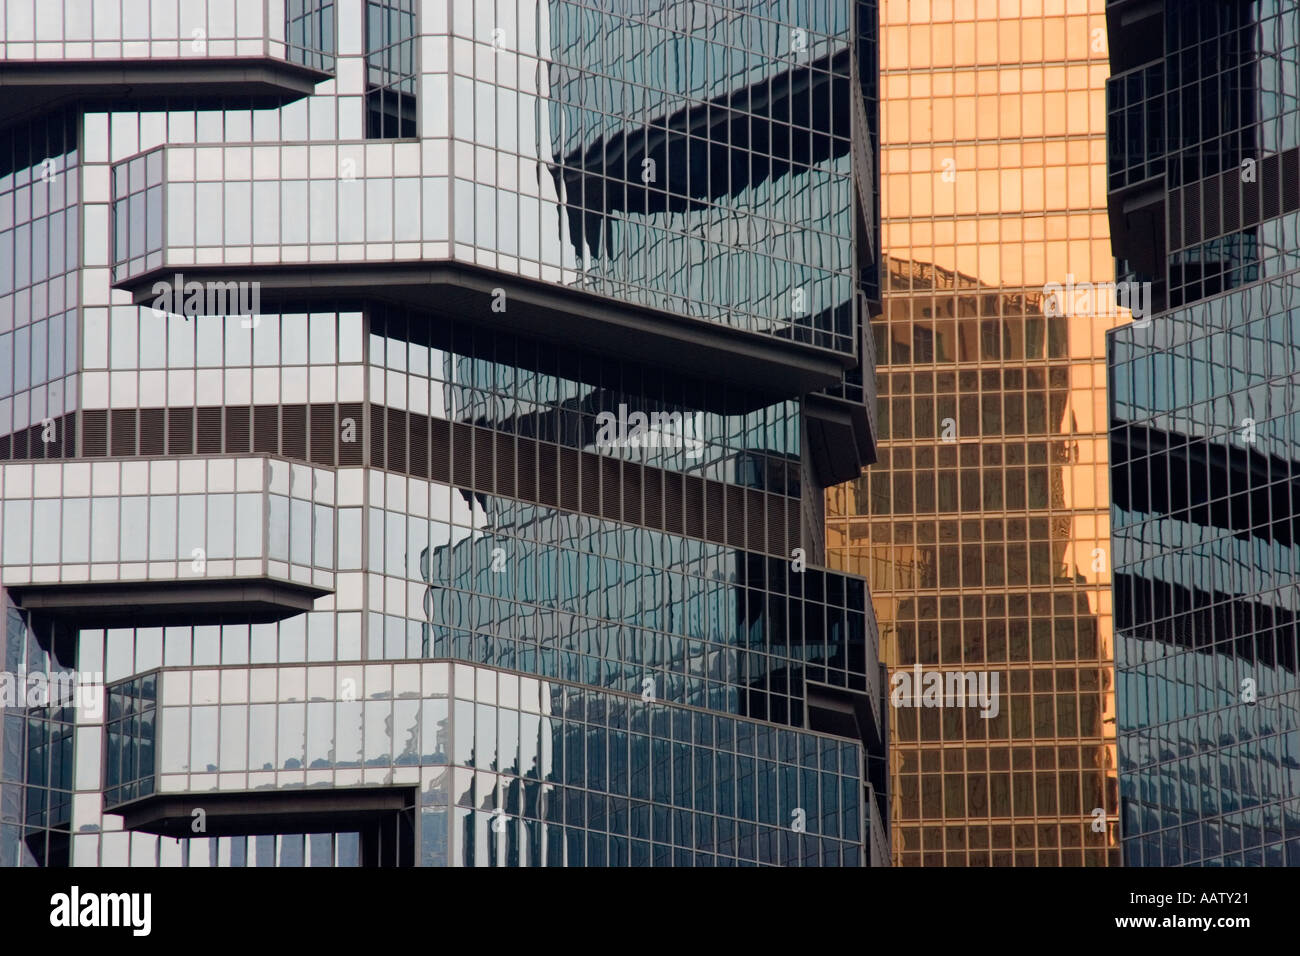 Detail of the Lippo Building in Hong Kong Stock Photo